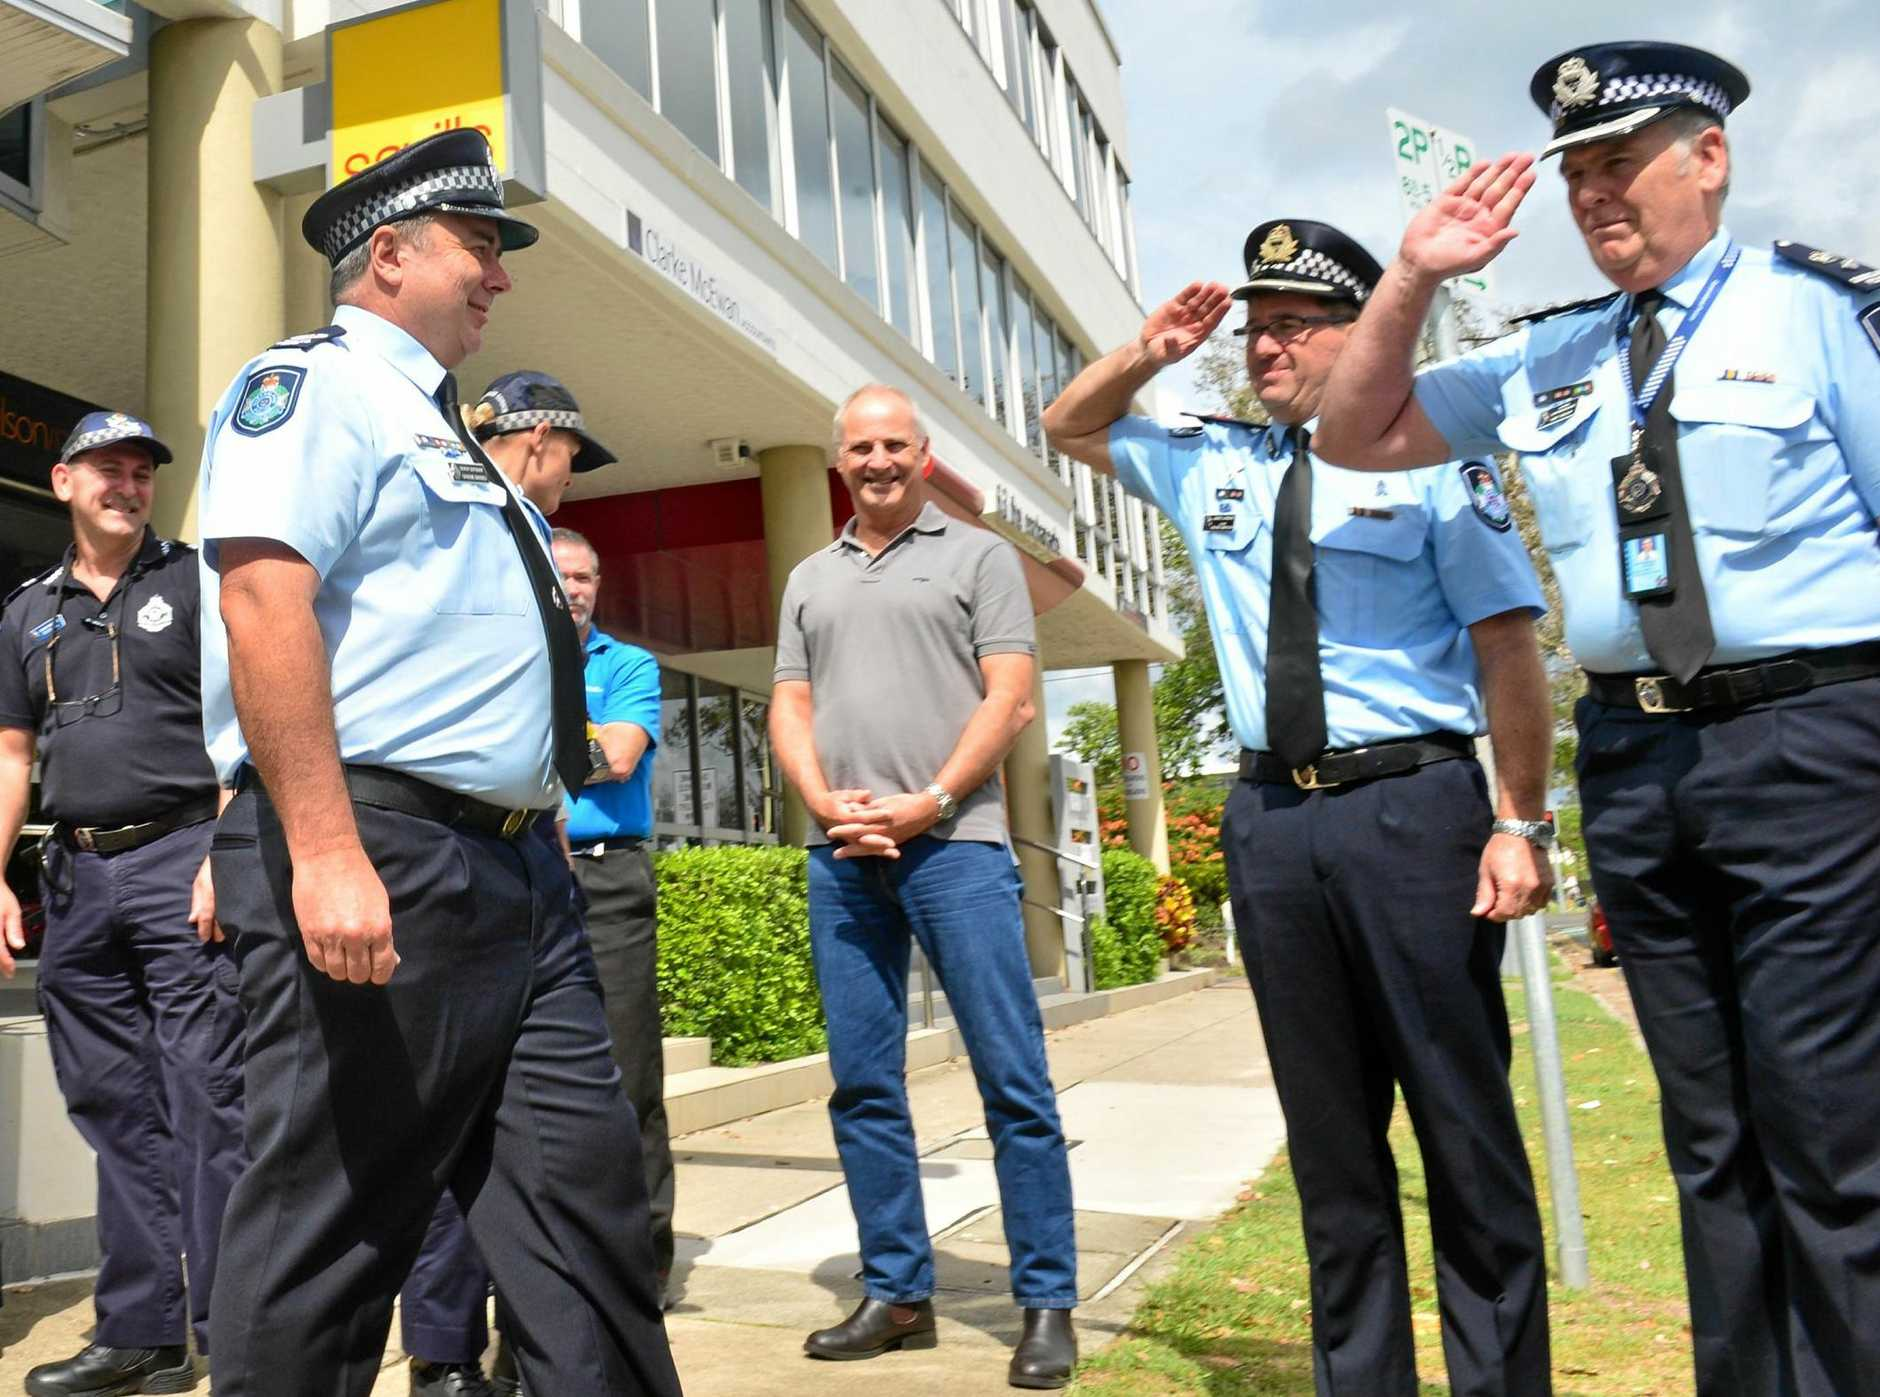 Snr Sgt Graeme Barnes retires after 38 years of service.